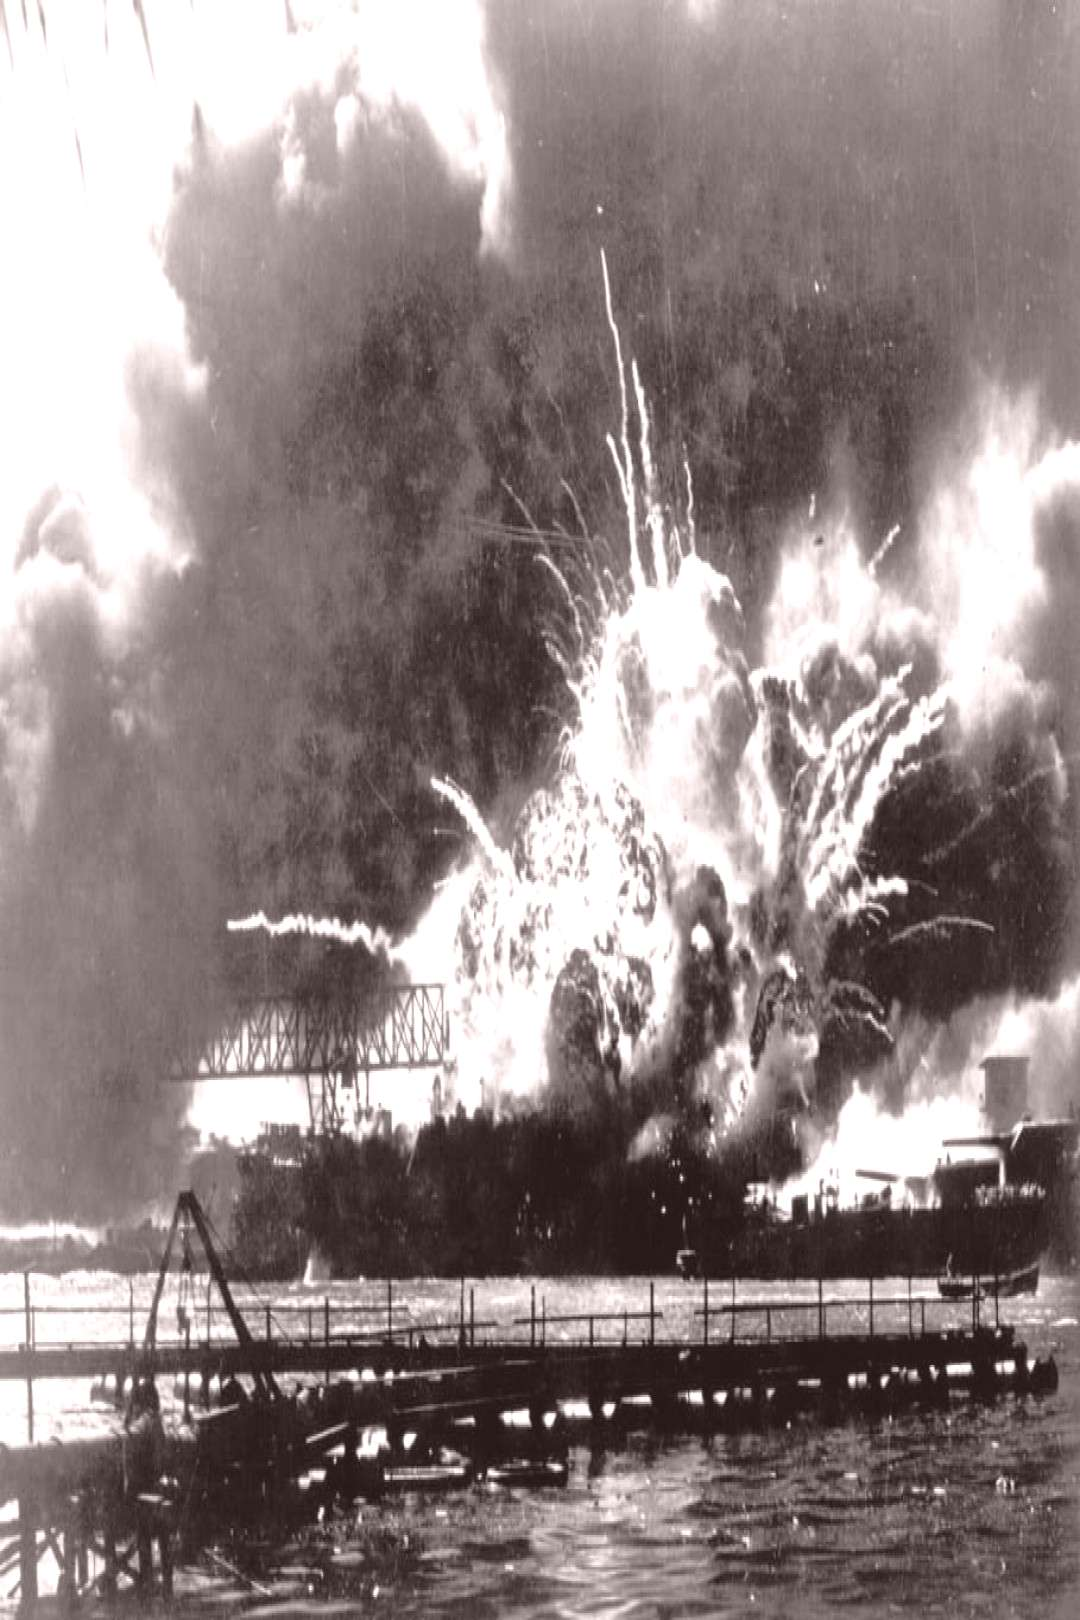 On december 7th, The Japanese army attacked pearl harbor. This was a main cause for the US to activ